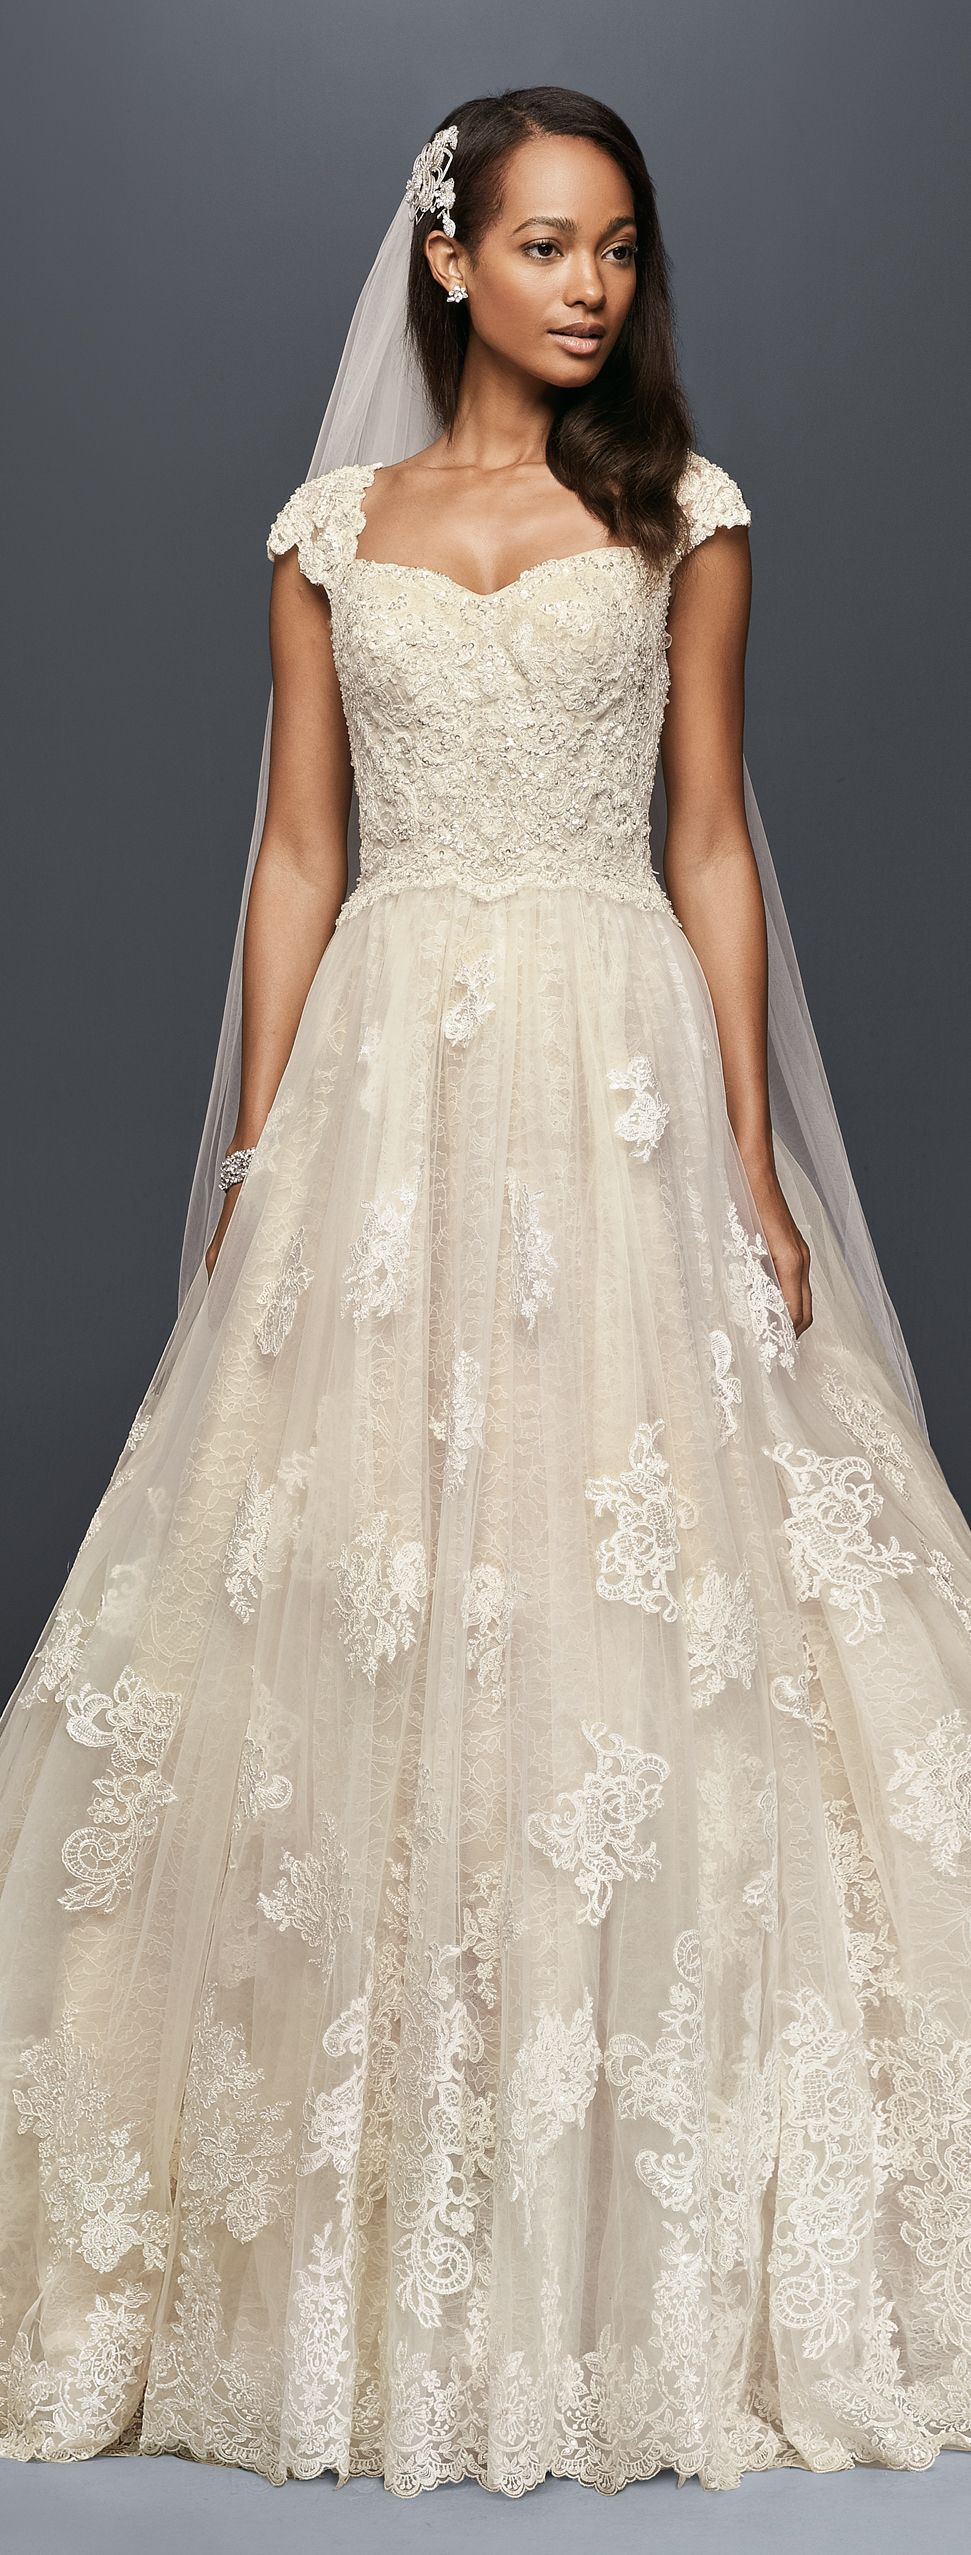 Cap Sleeve Lace Wedding Ball Gown with Beading David's